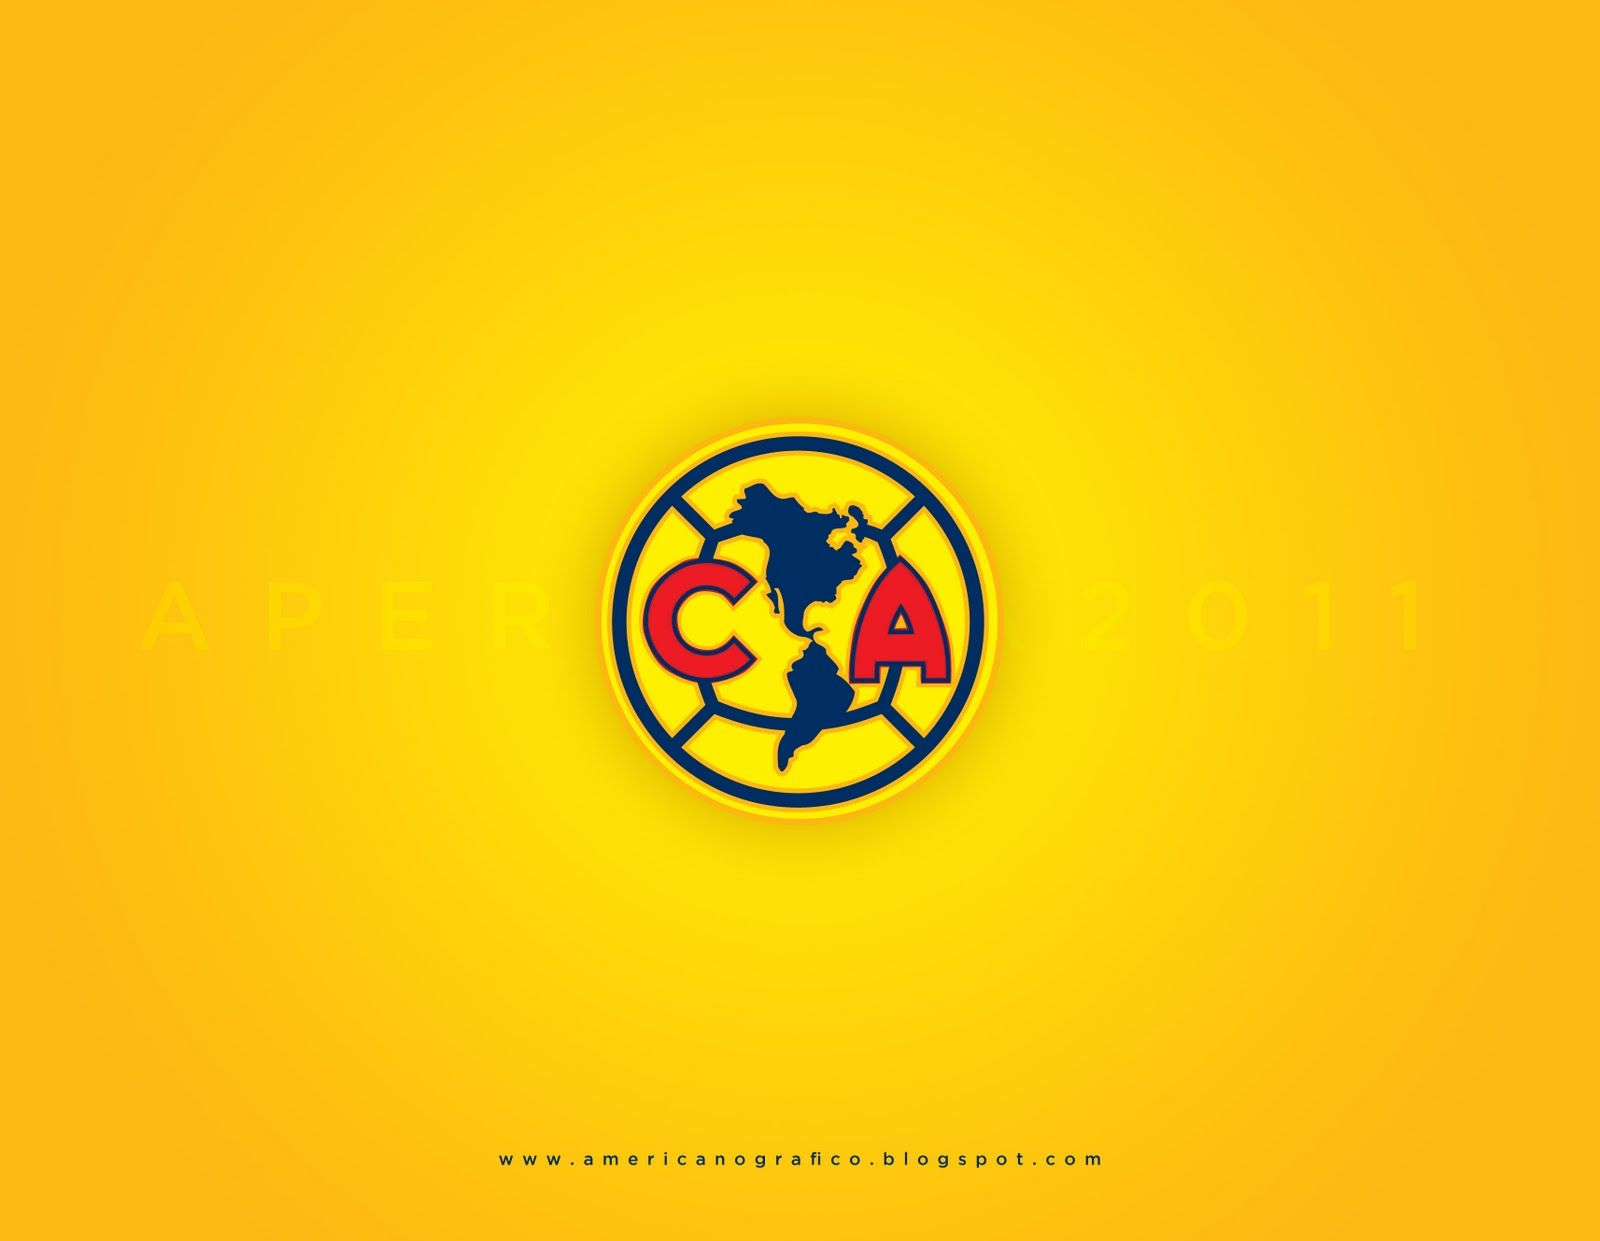 1600x1241 HD Quality Images Collection of Club America: Yong Aspland